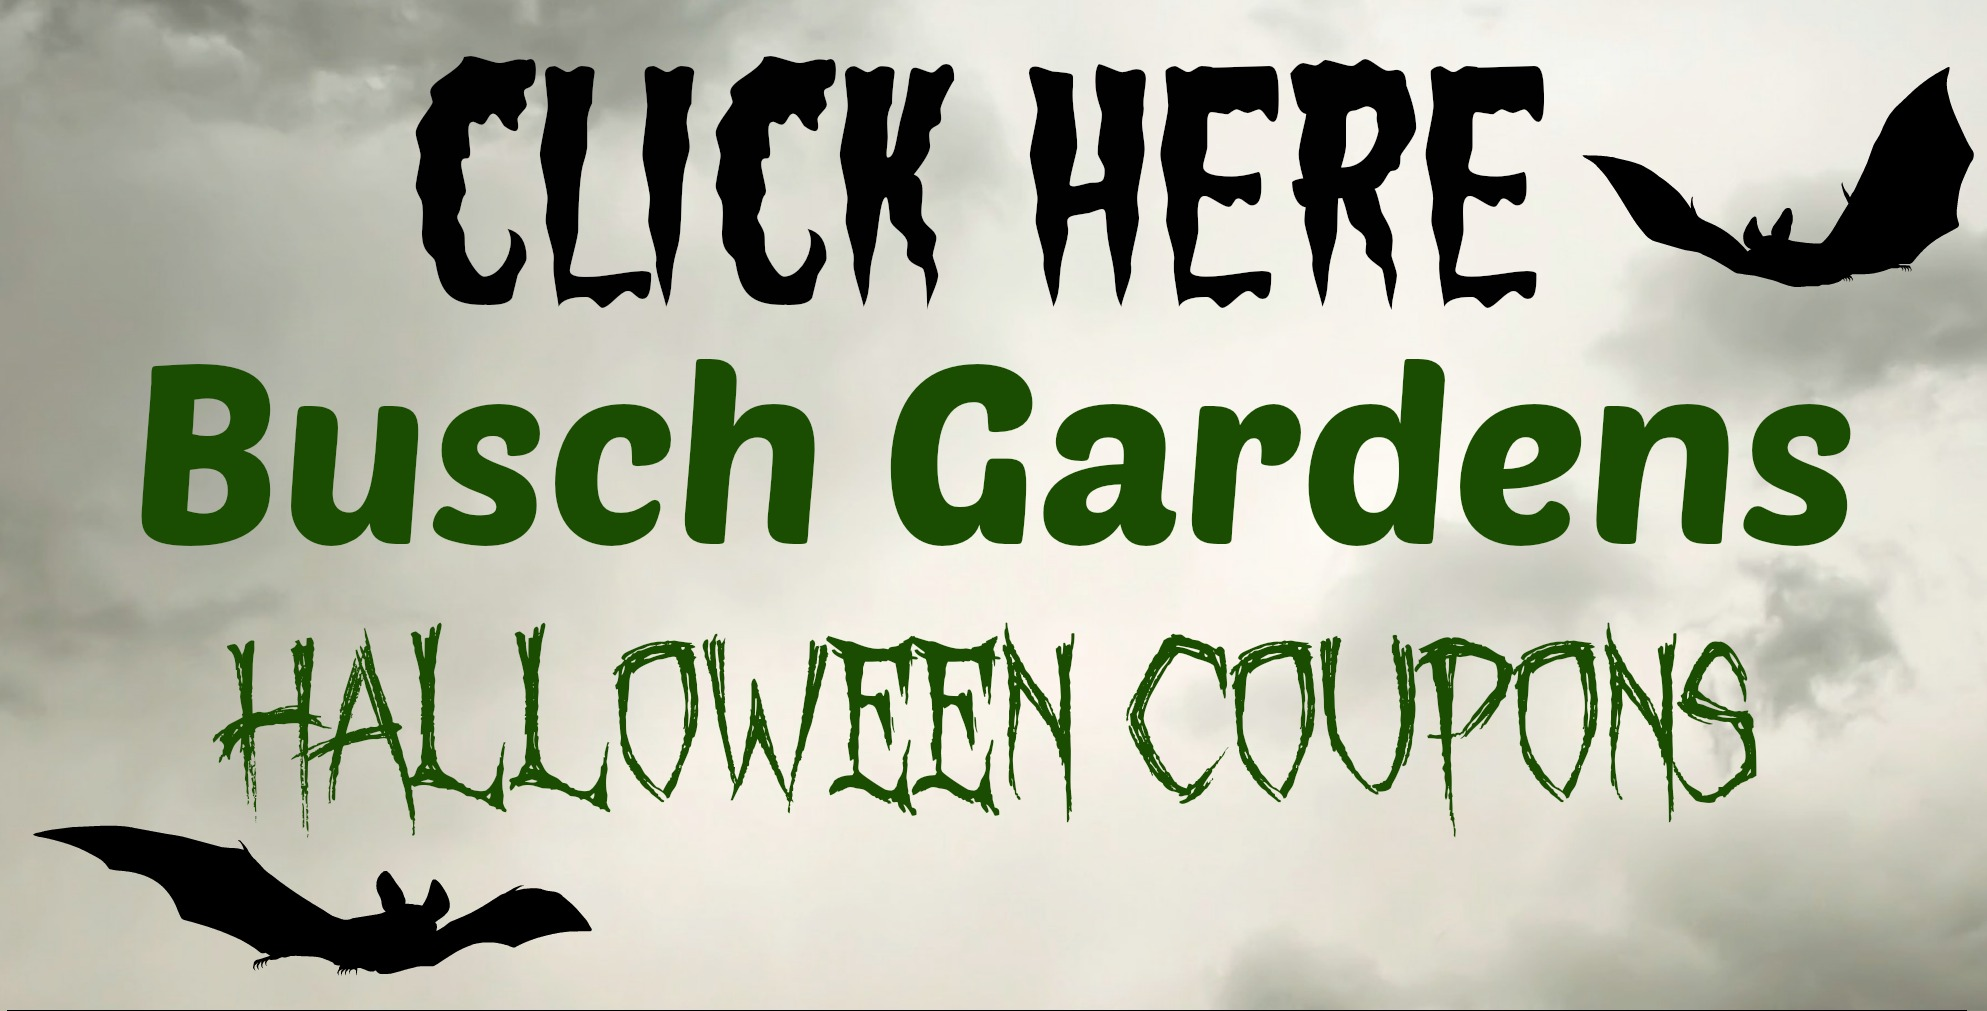 Buschgardens.com Coupons & Deals